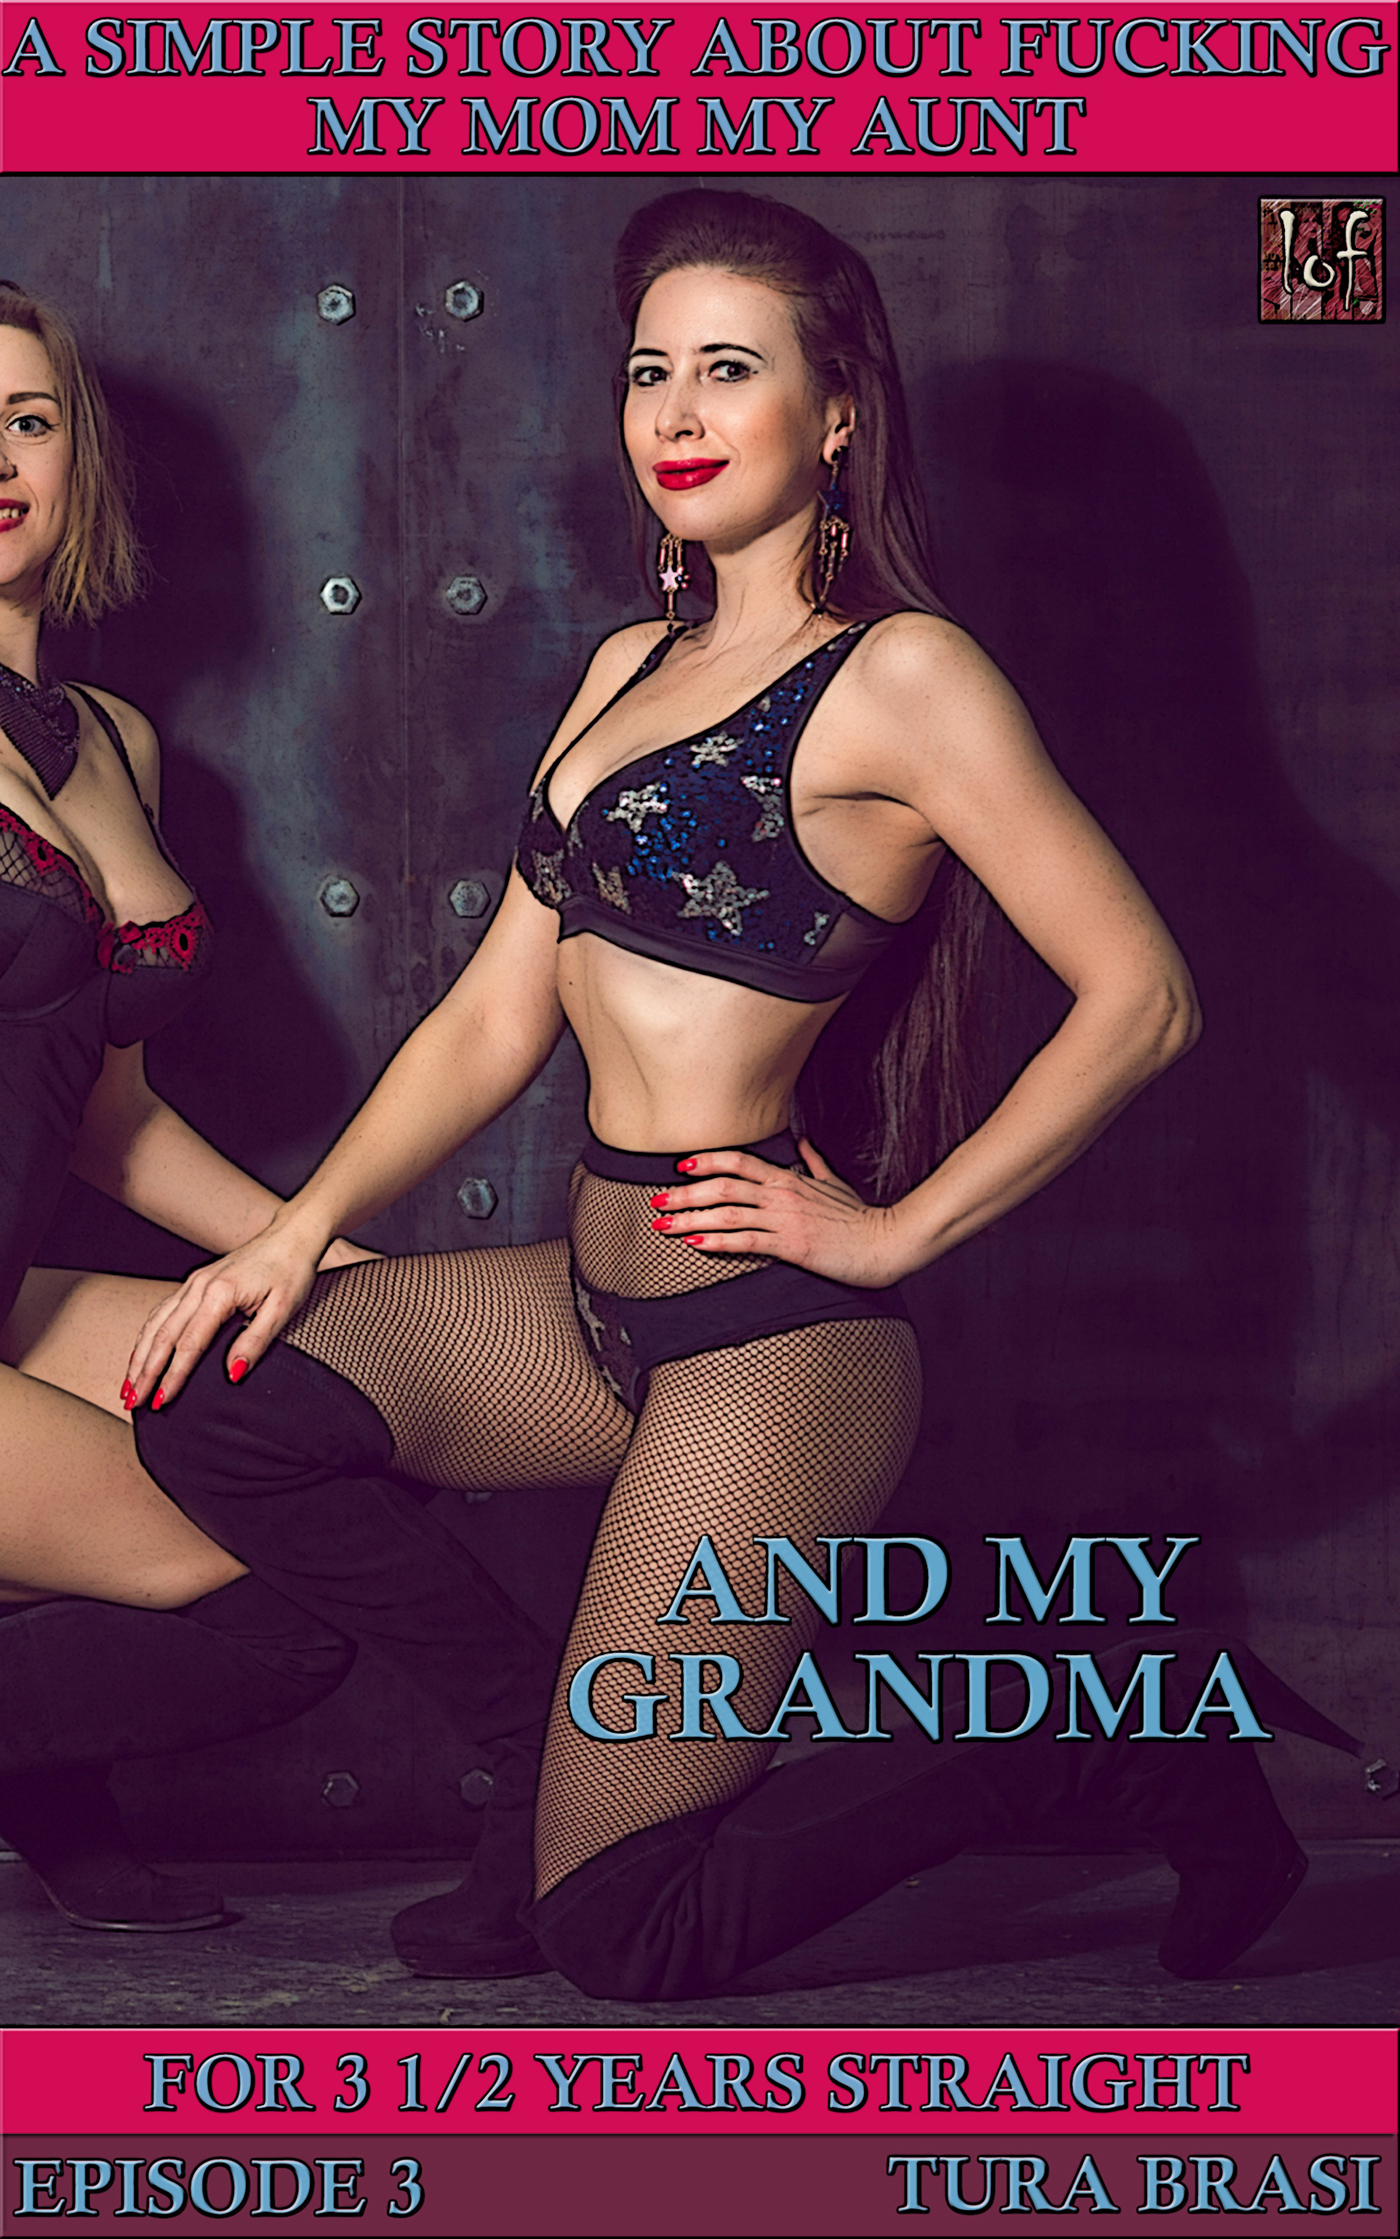 LOF New Release: A Simple Story About Fucking My Mom, My Aunt, And My Grandma For 3½ Years Straight: Episode 3